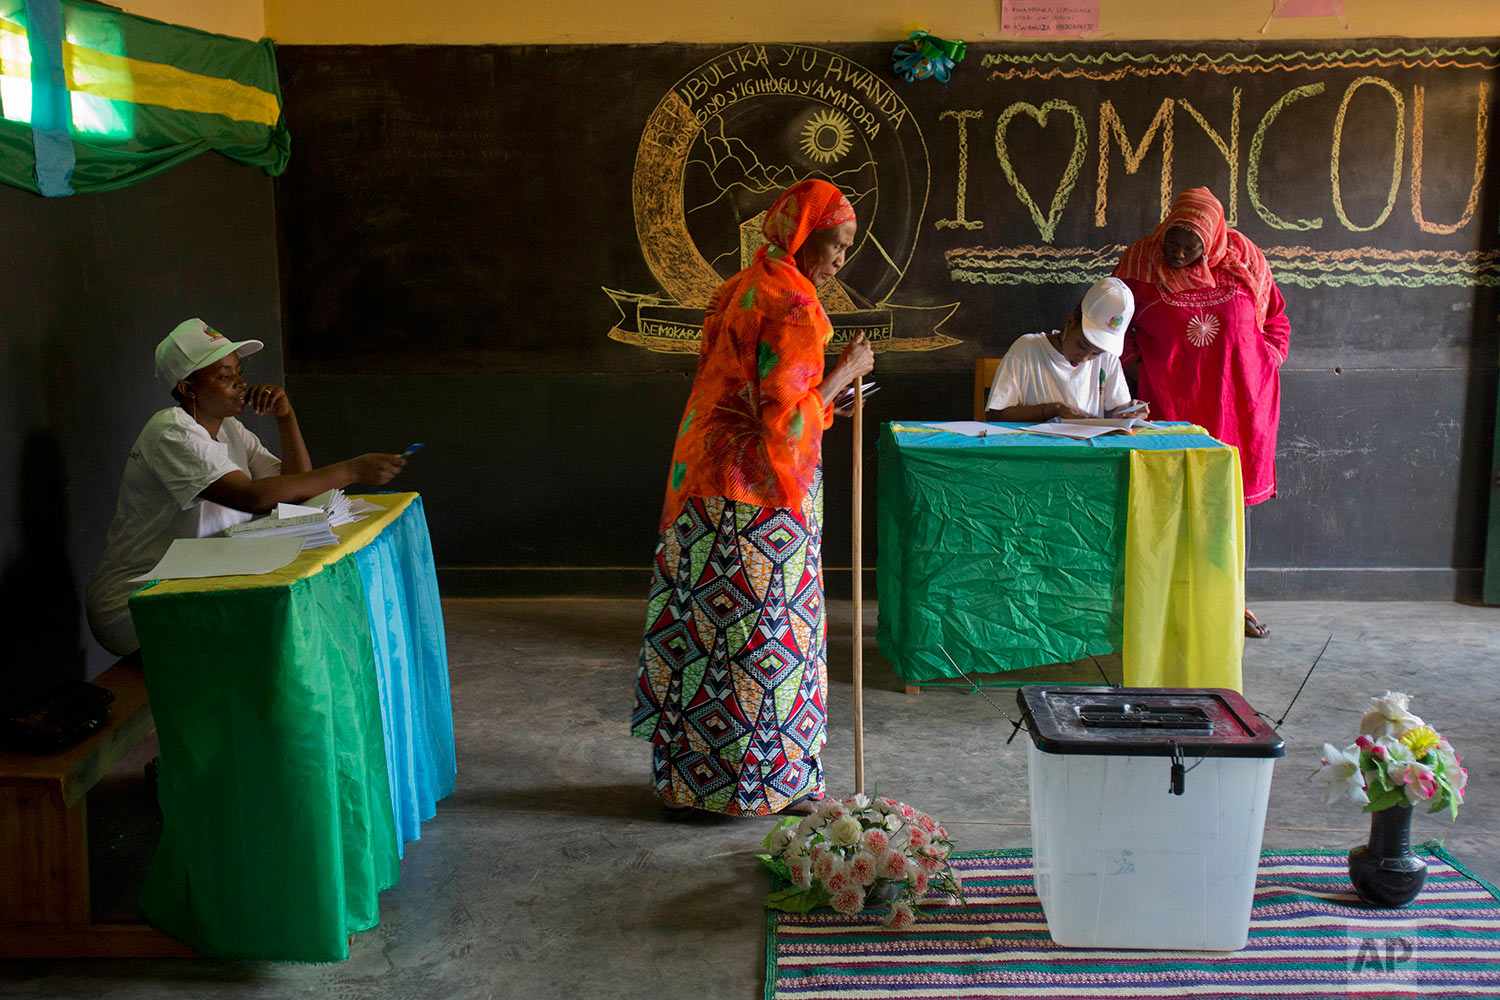 Rwandans prepare to vote for the presidential elections at a polling station in Rwanda's capital Kigali Friday, Aug. 4, 2017. Outgoing President Paul Kagame is widely expected to win another term after the government disqualified all but three candidates. (AP Photo/Jerome Delay)